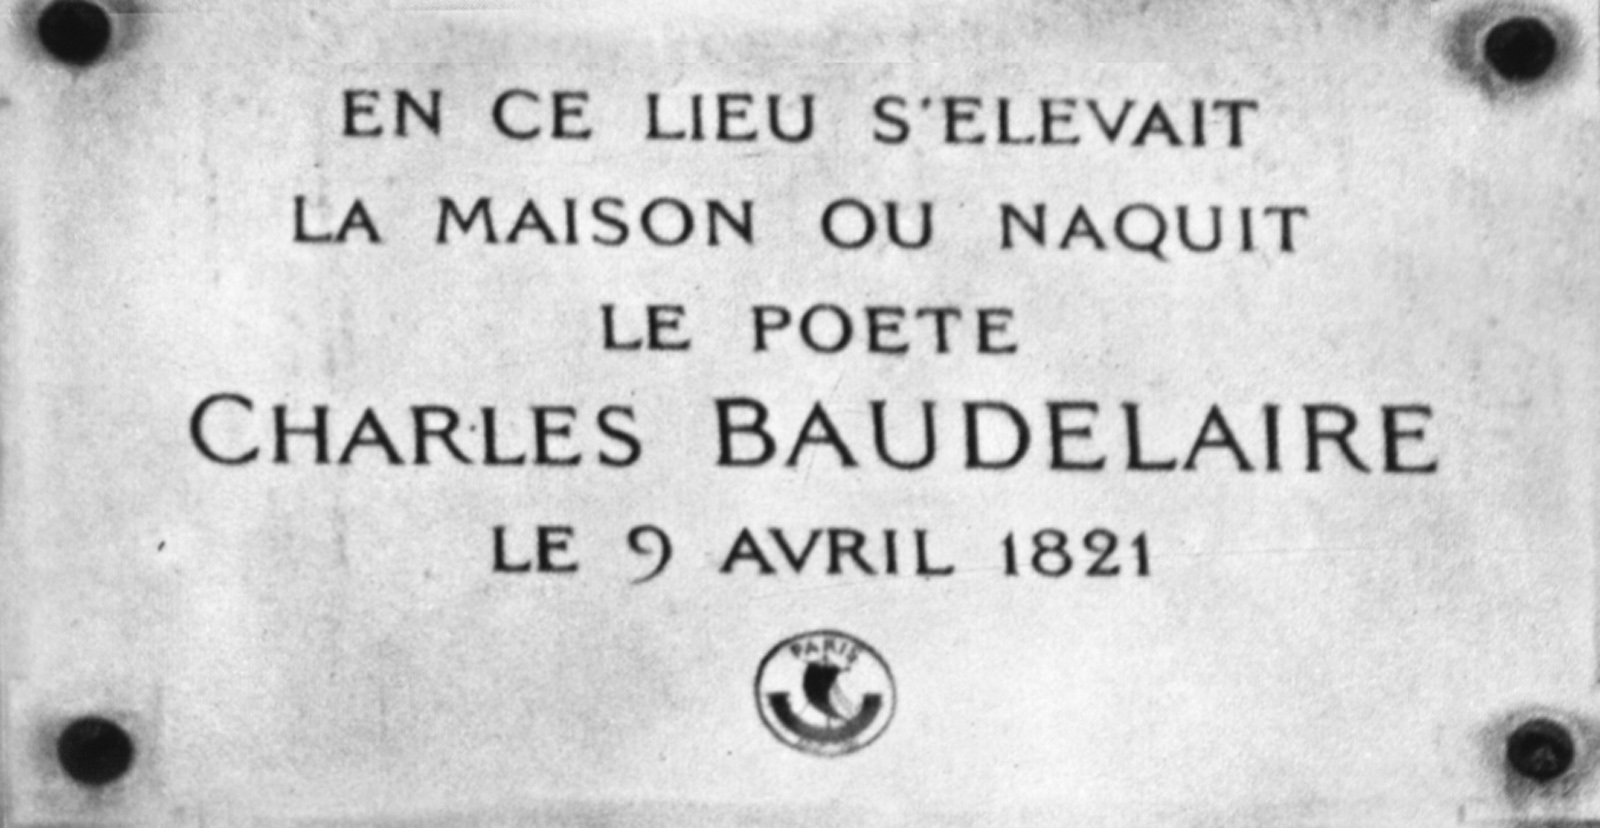 The plaque commemorating the centenary Baudelaire